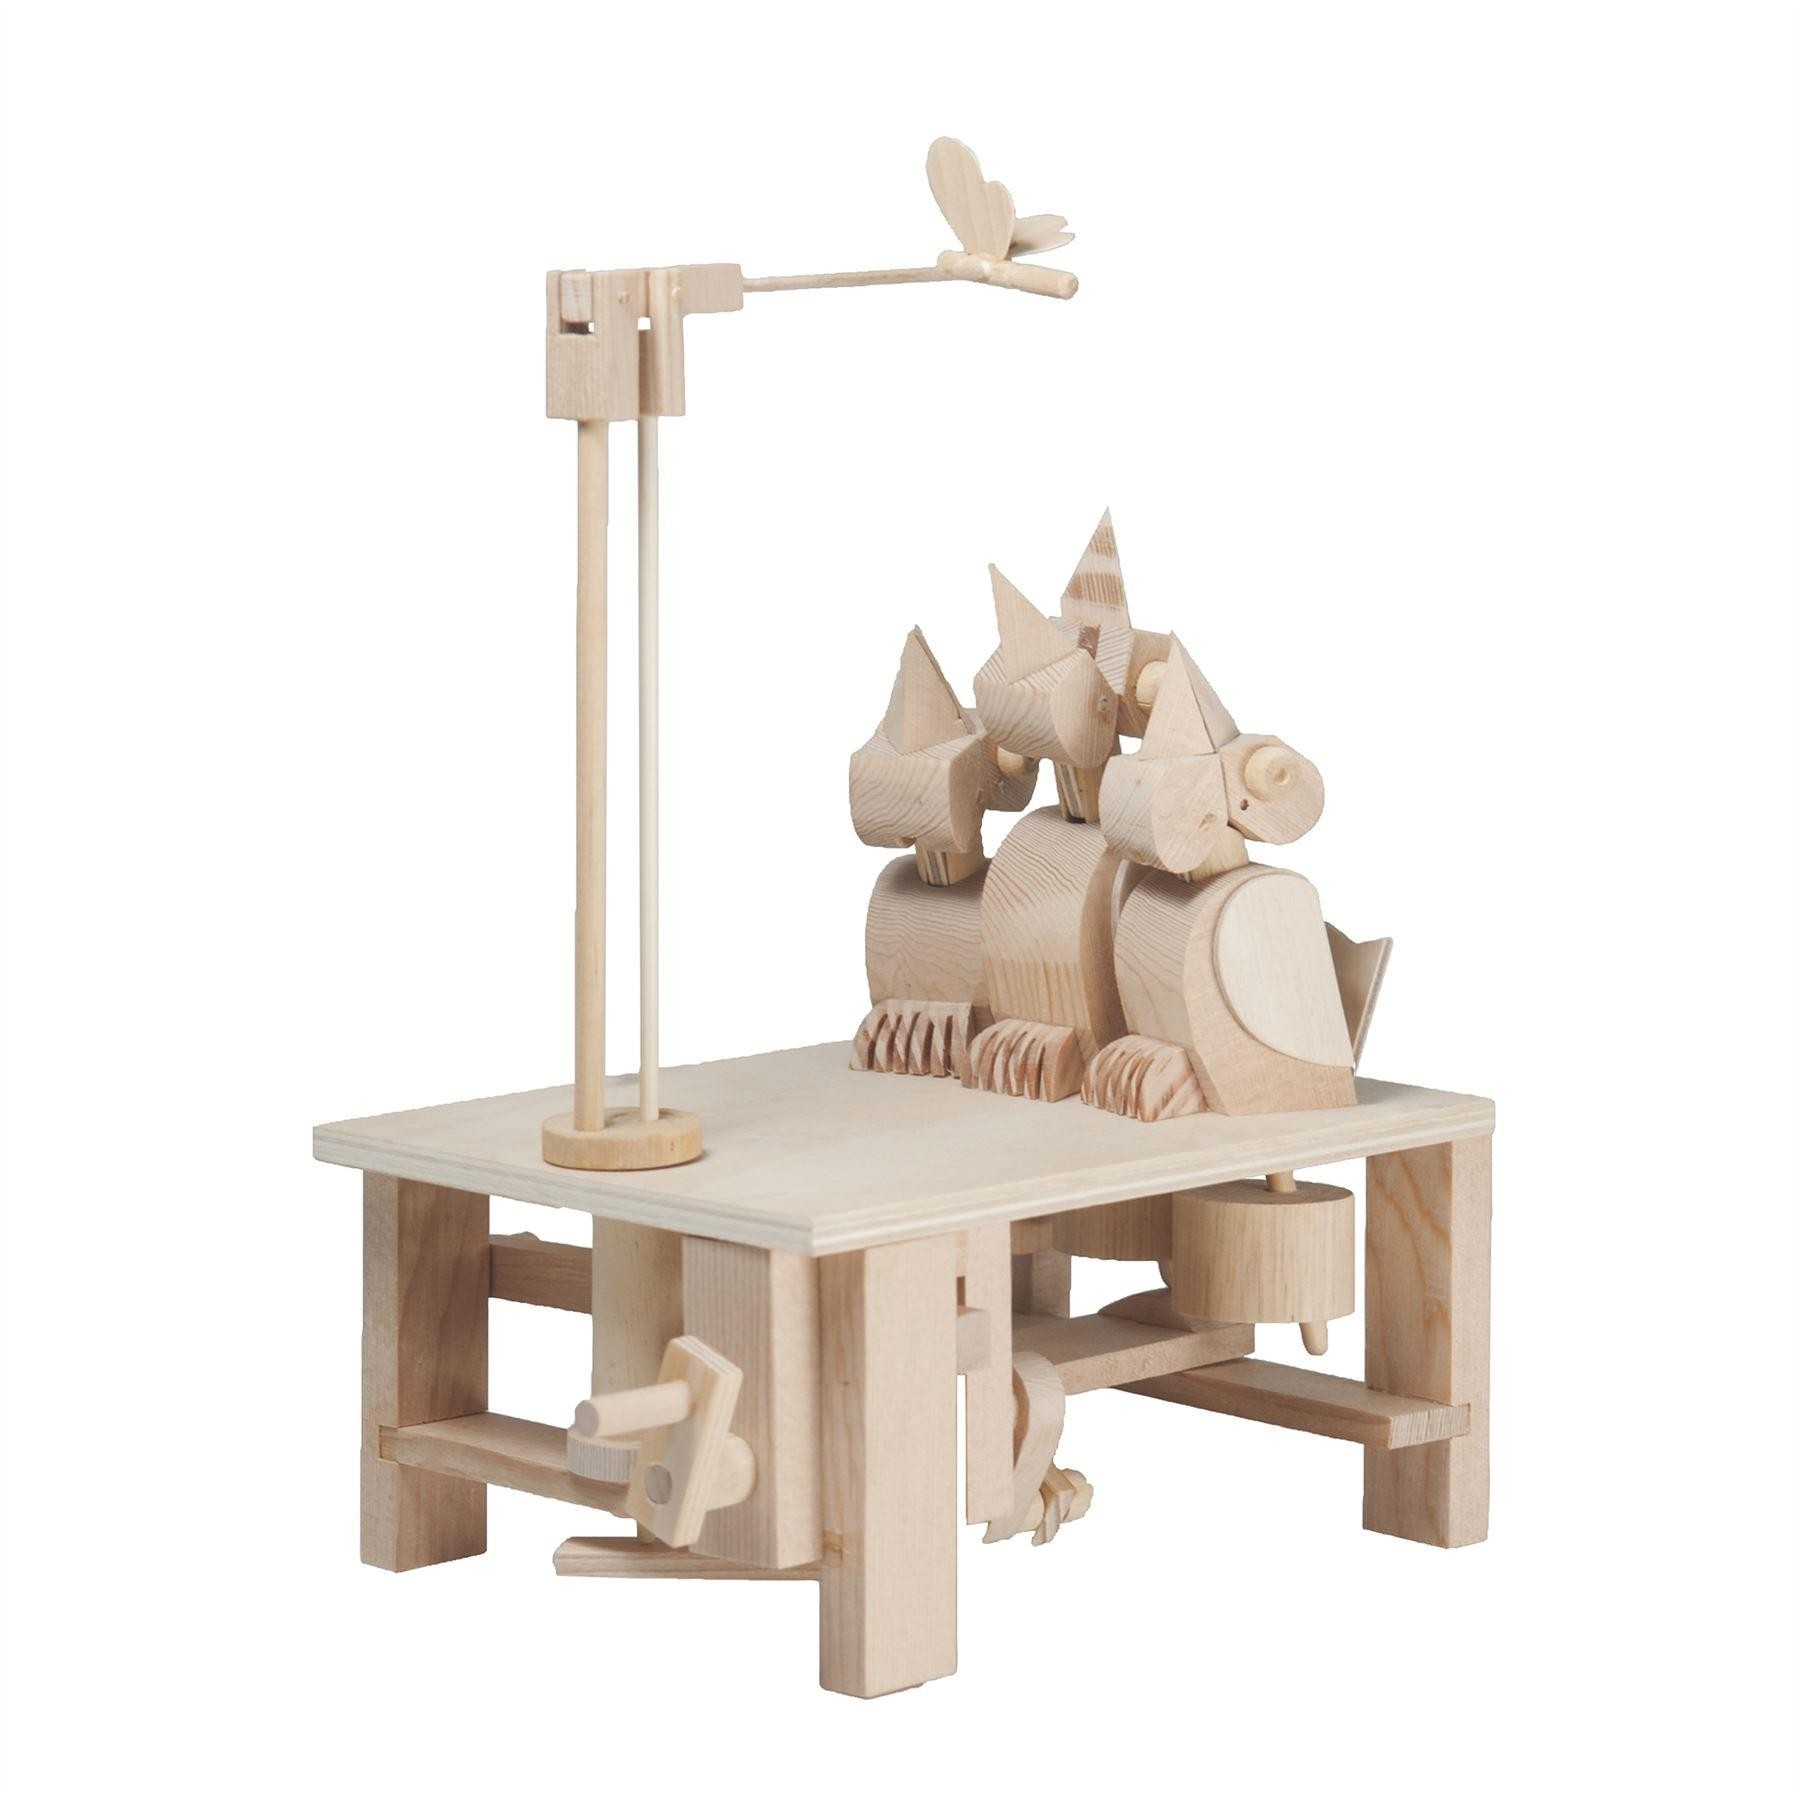 Timberkits Chirpy Chicks wooden model flatpack kit